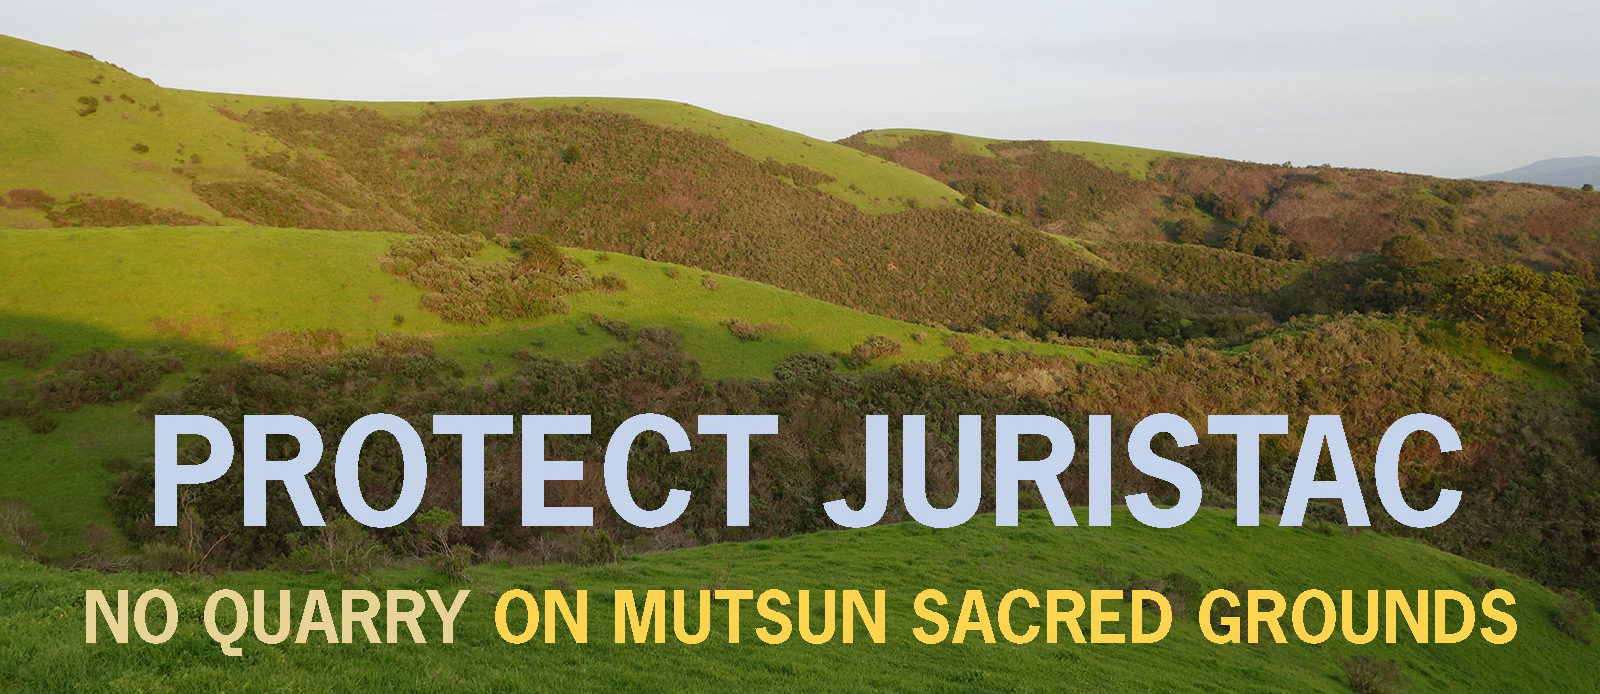 Protect Juristac